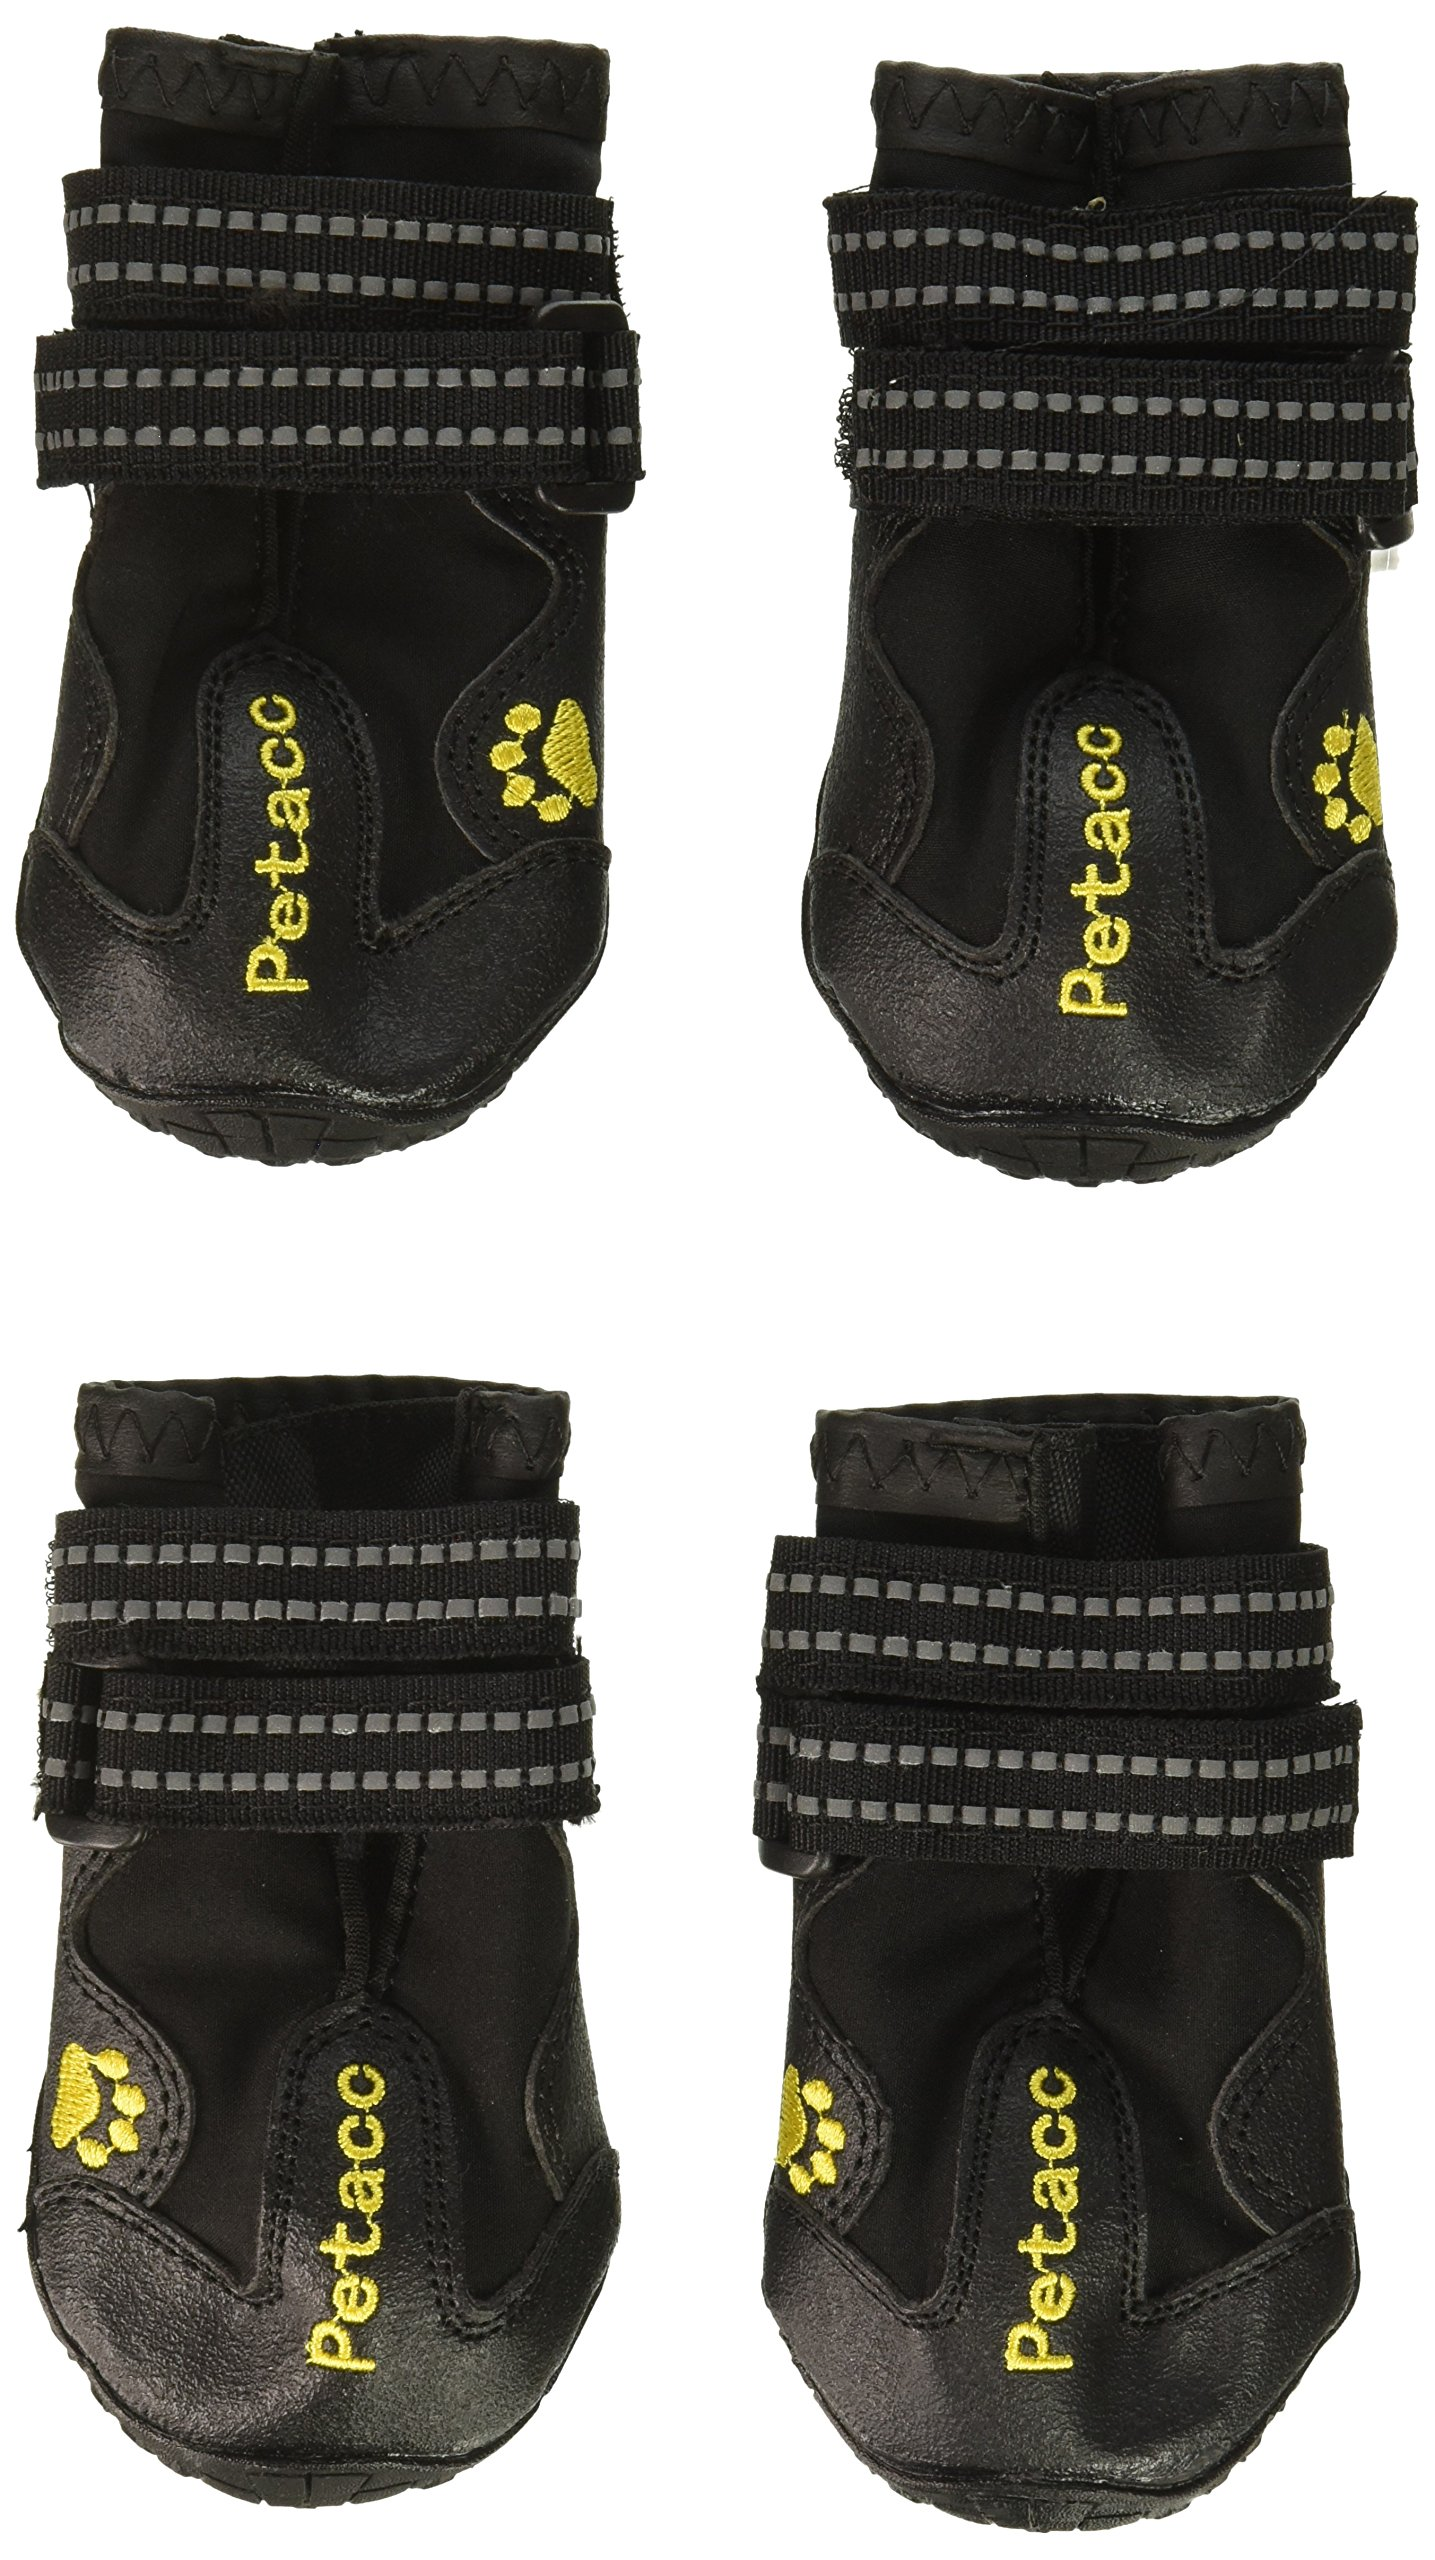 Petacc Dog Boots Water Resistant Dog Shoes for Large Dogs and Black Labrador 4 Pcs in Size 4 Black